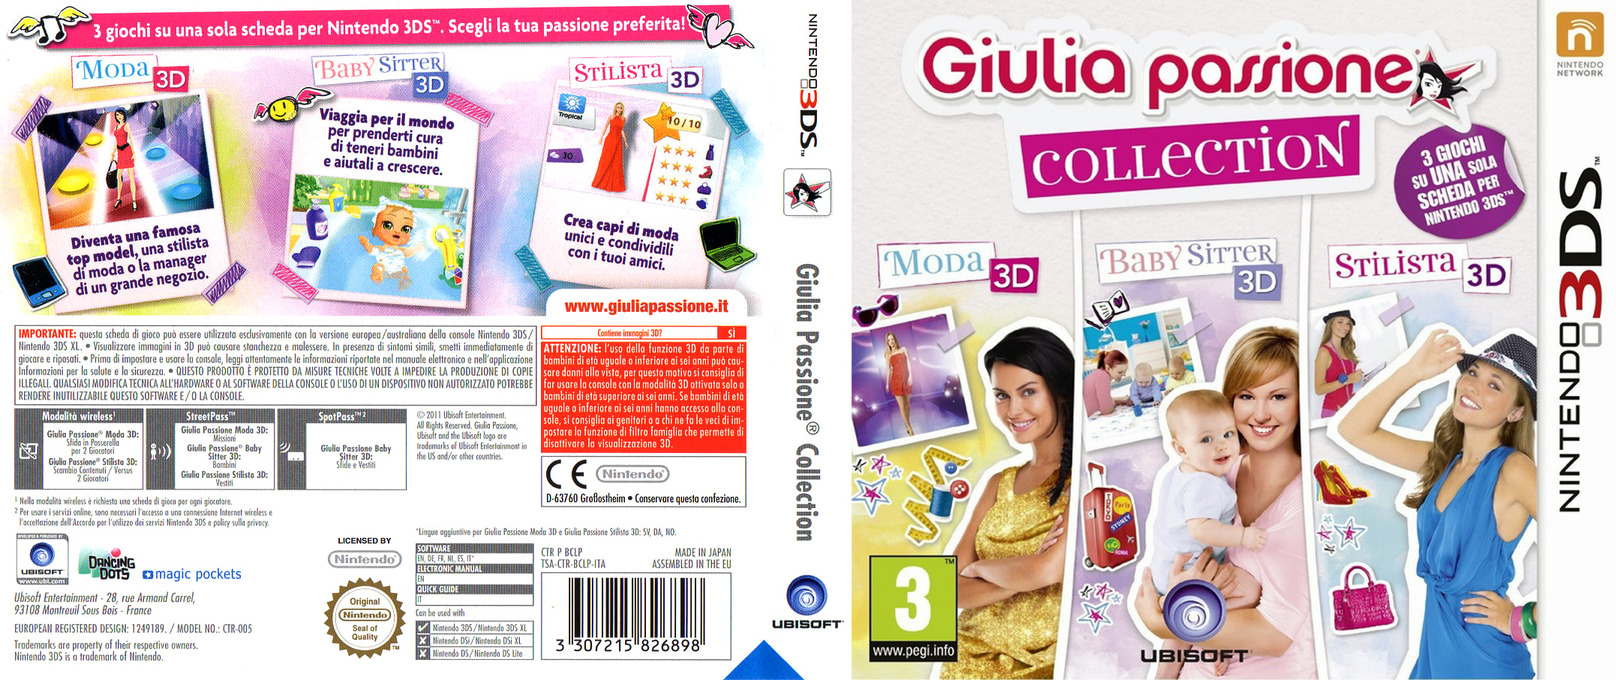 Giulia passione collection 3DS coverfullHQ (BCLP)